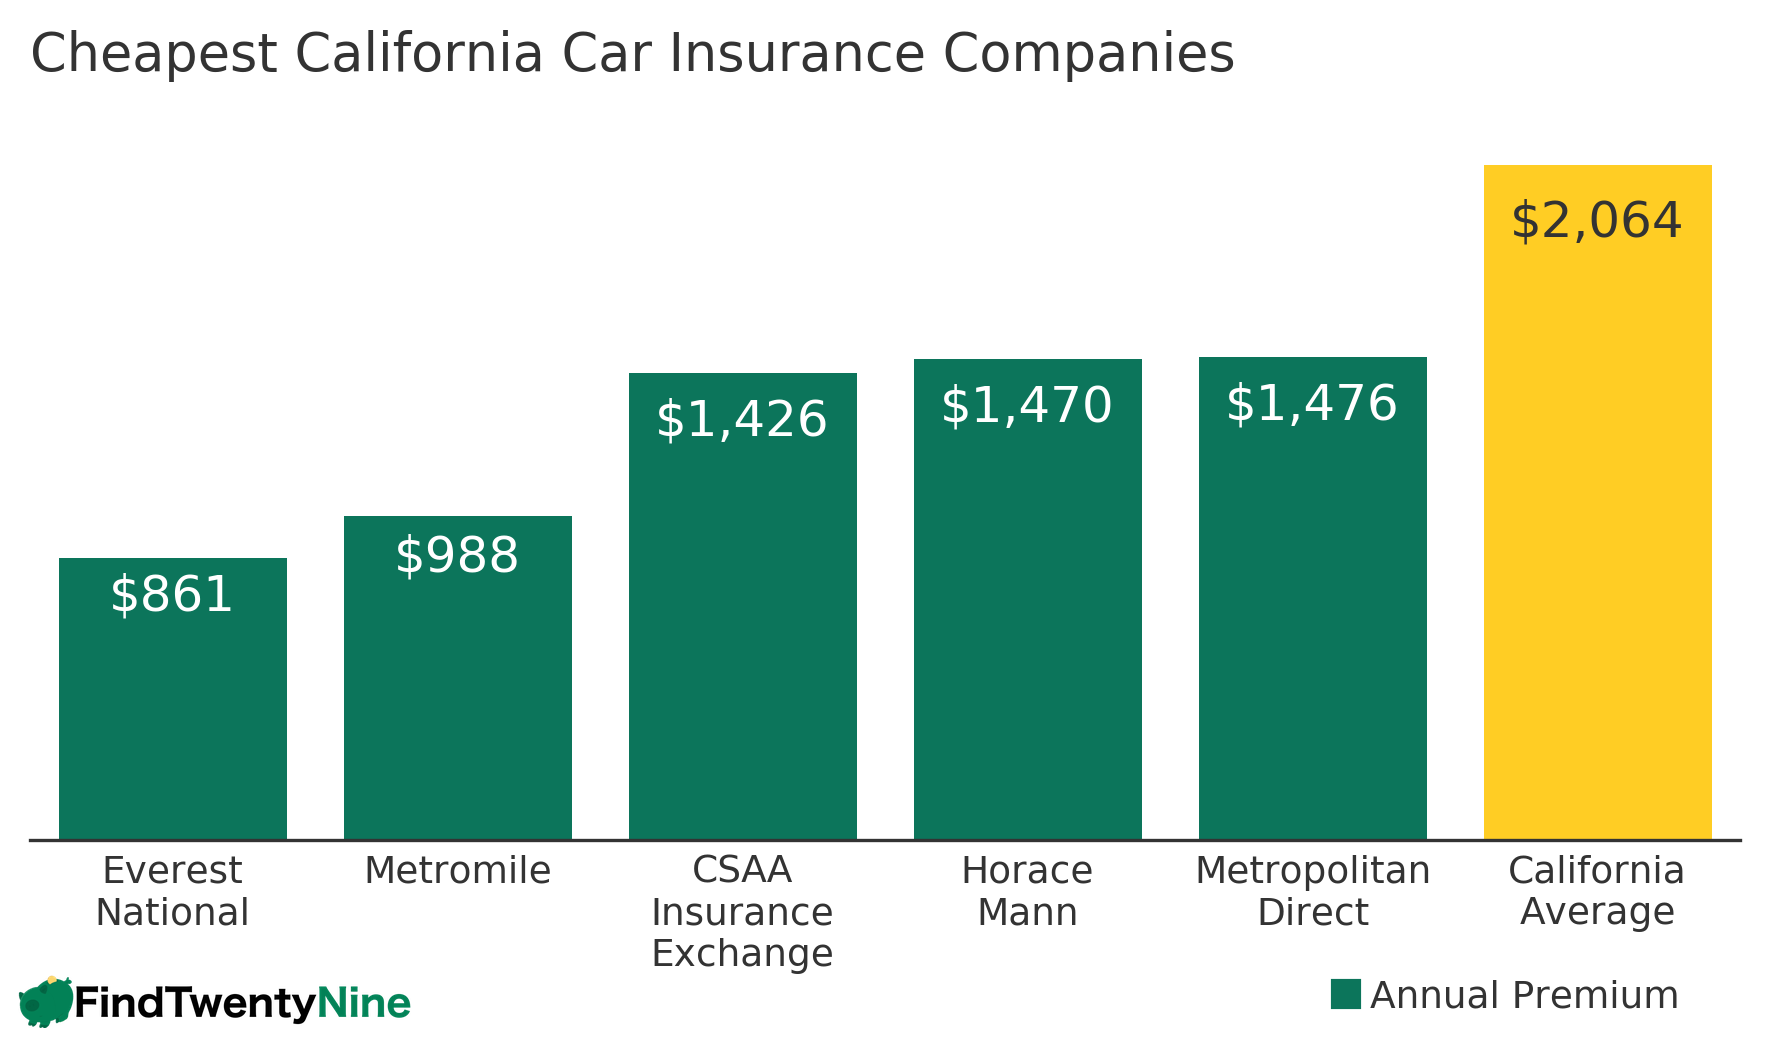 Cheapest California Car Insurance Companies